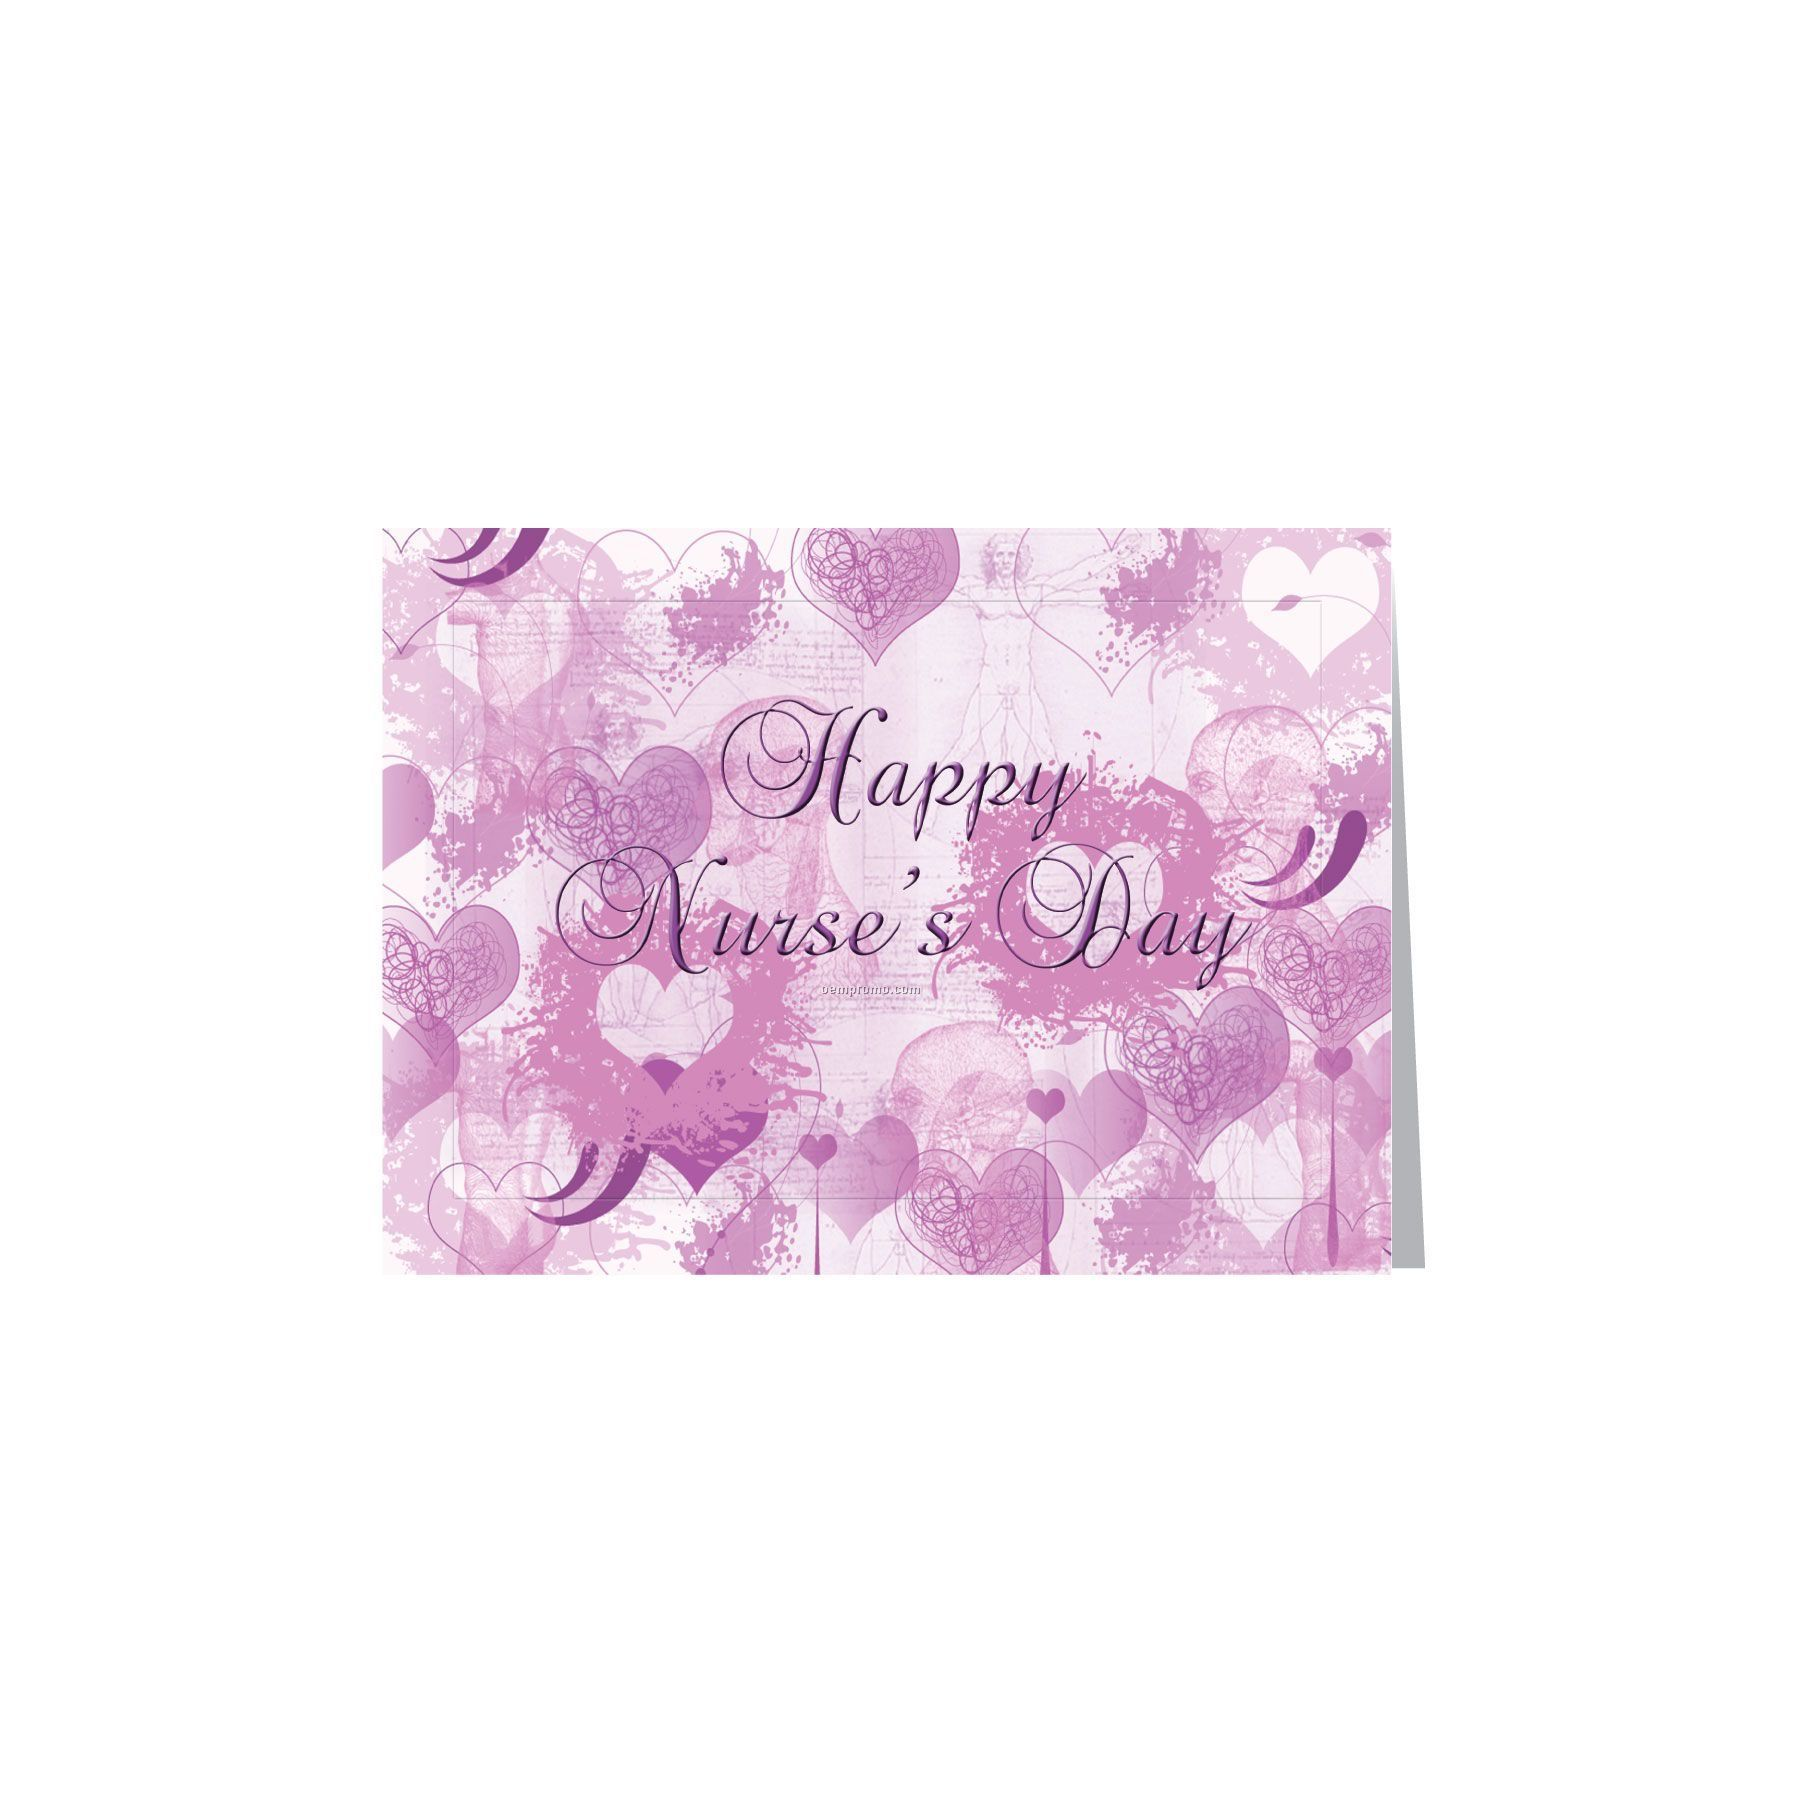 Happy nurses day heart greeting cardchina wholesale happy nurses happy nurses day heart greeting card m4hsunfo